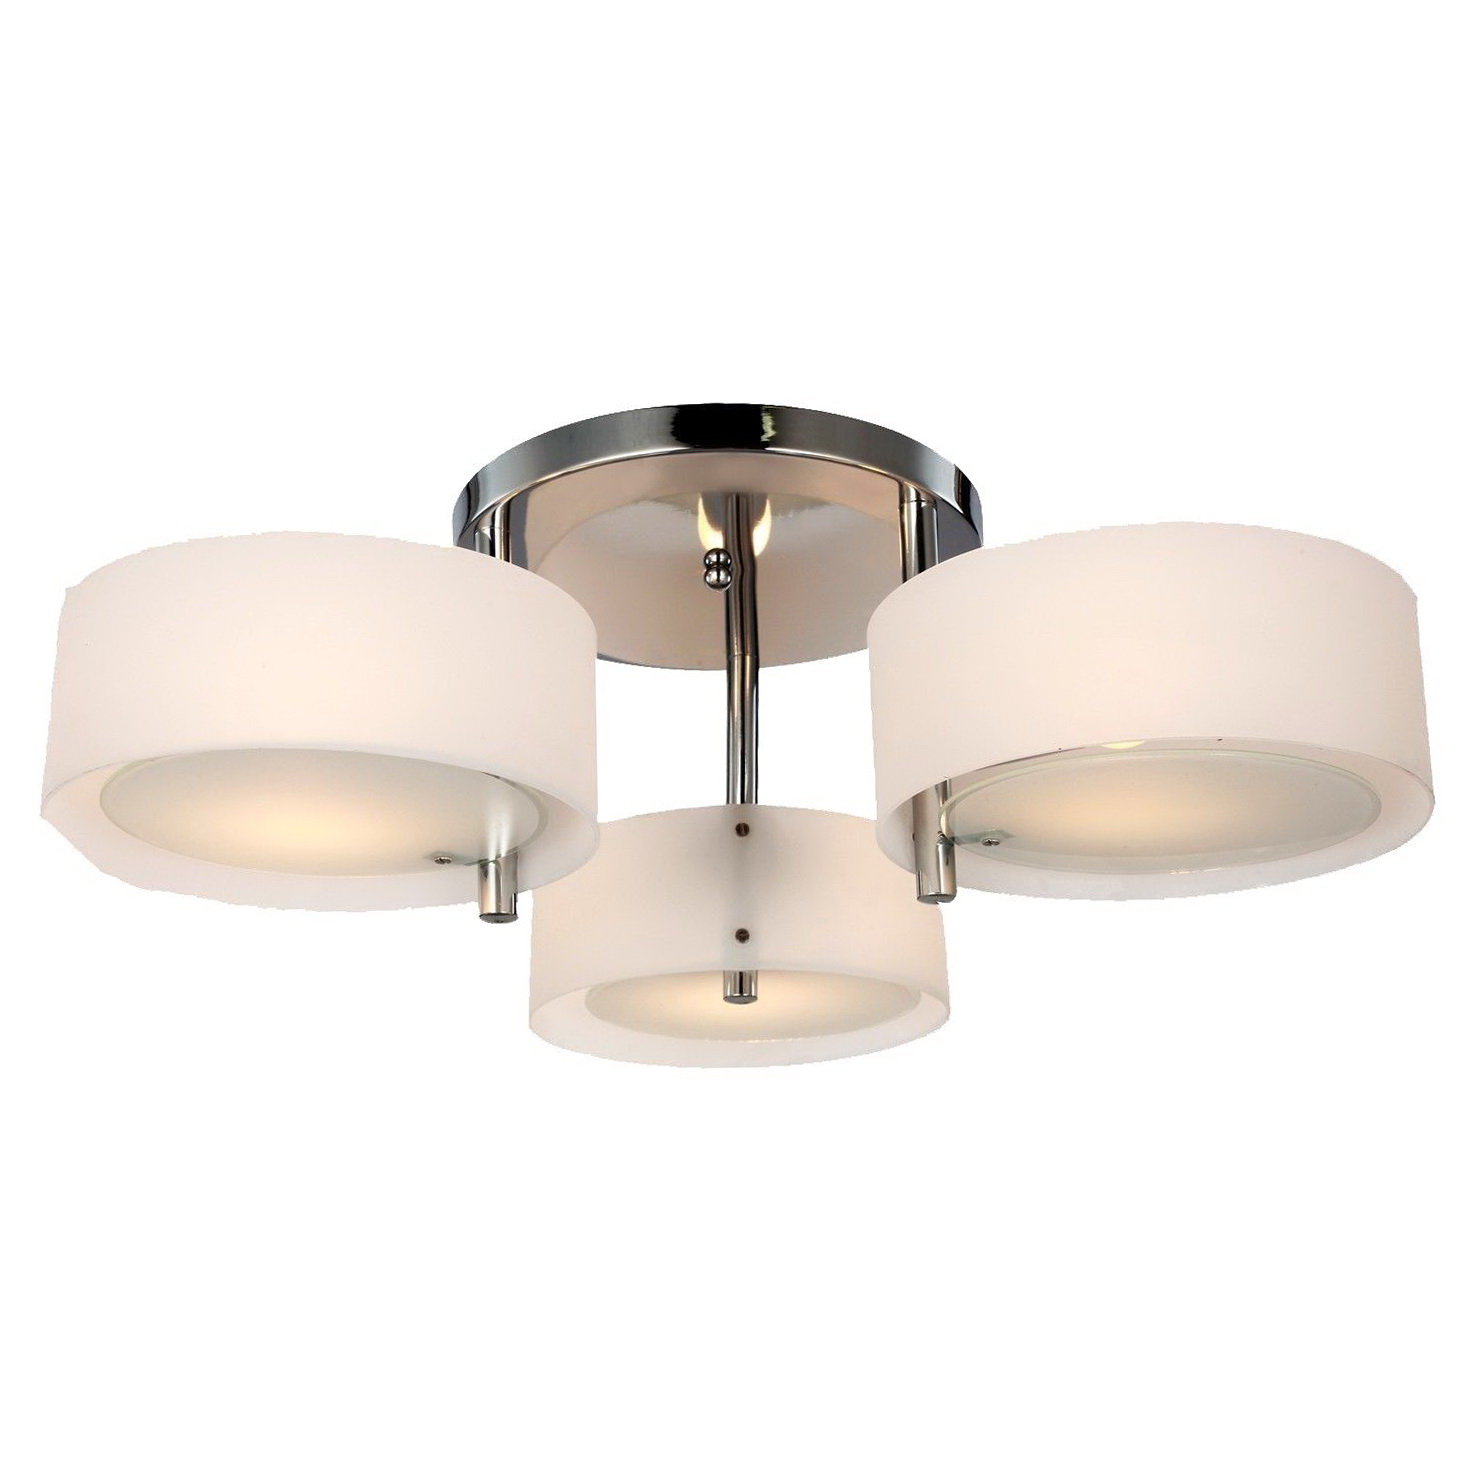 Ceiling Mount Chandelier Light Fixture